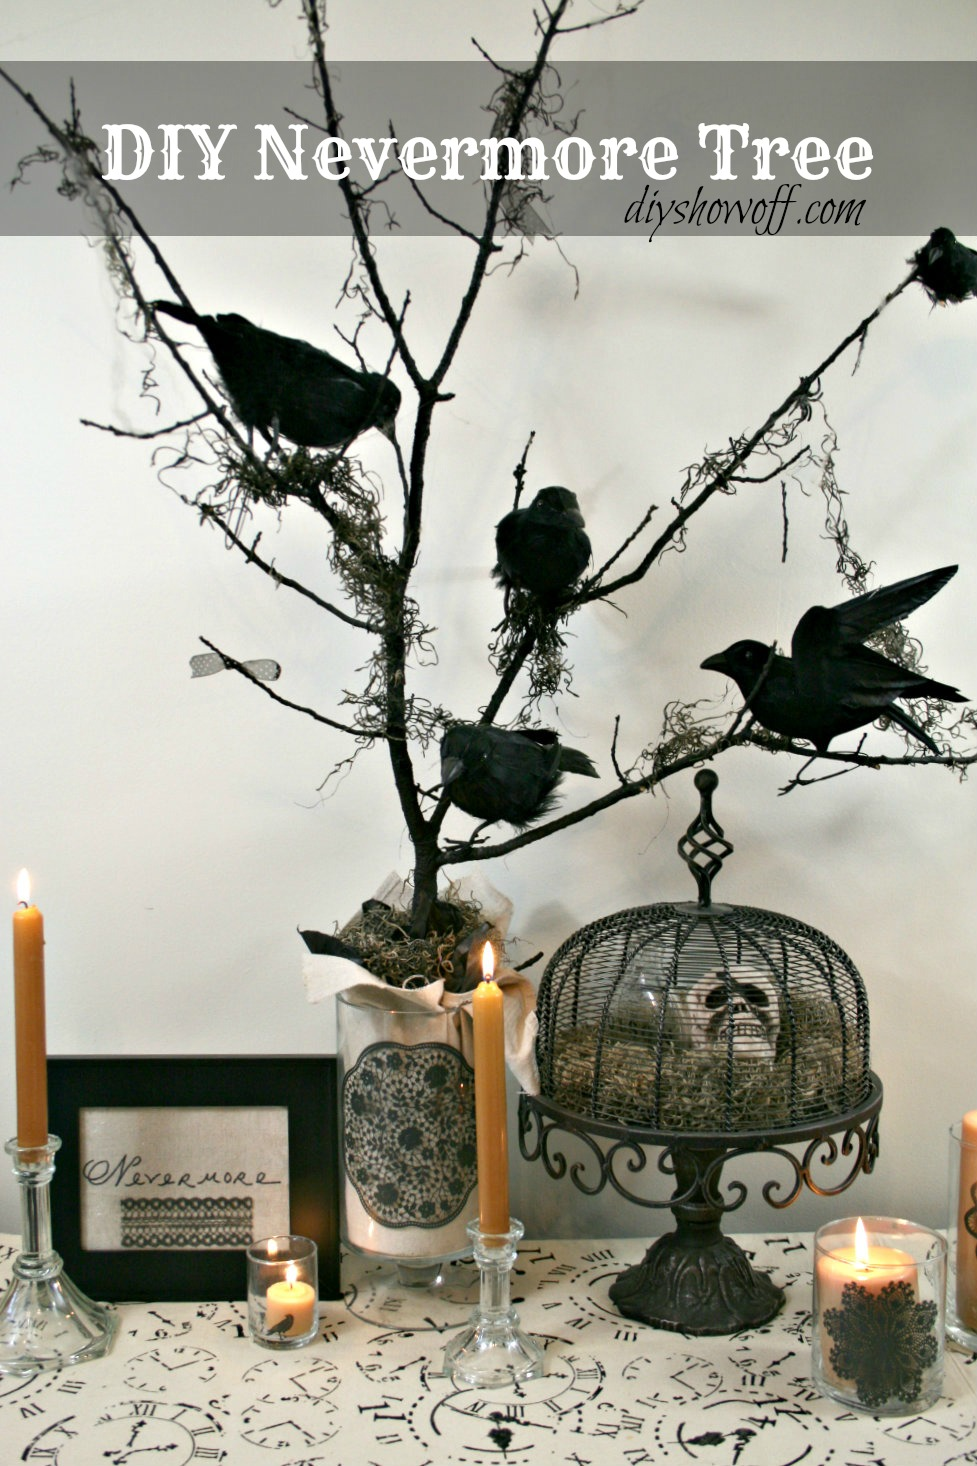 Halloween diy decor - Diy Halloween Nevermore Tree